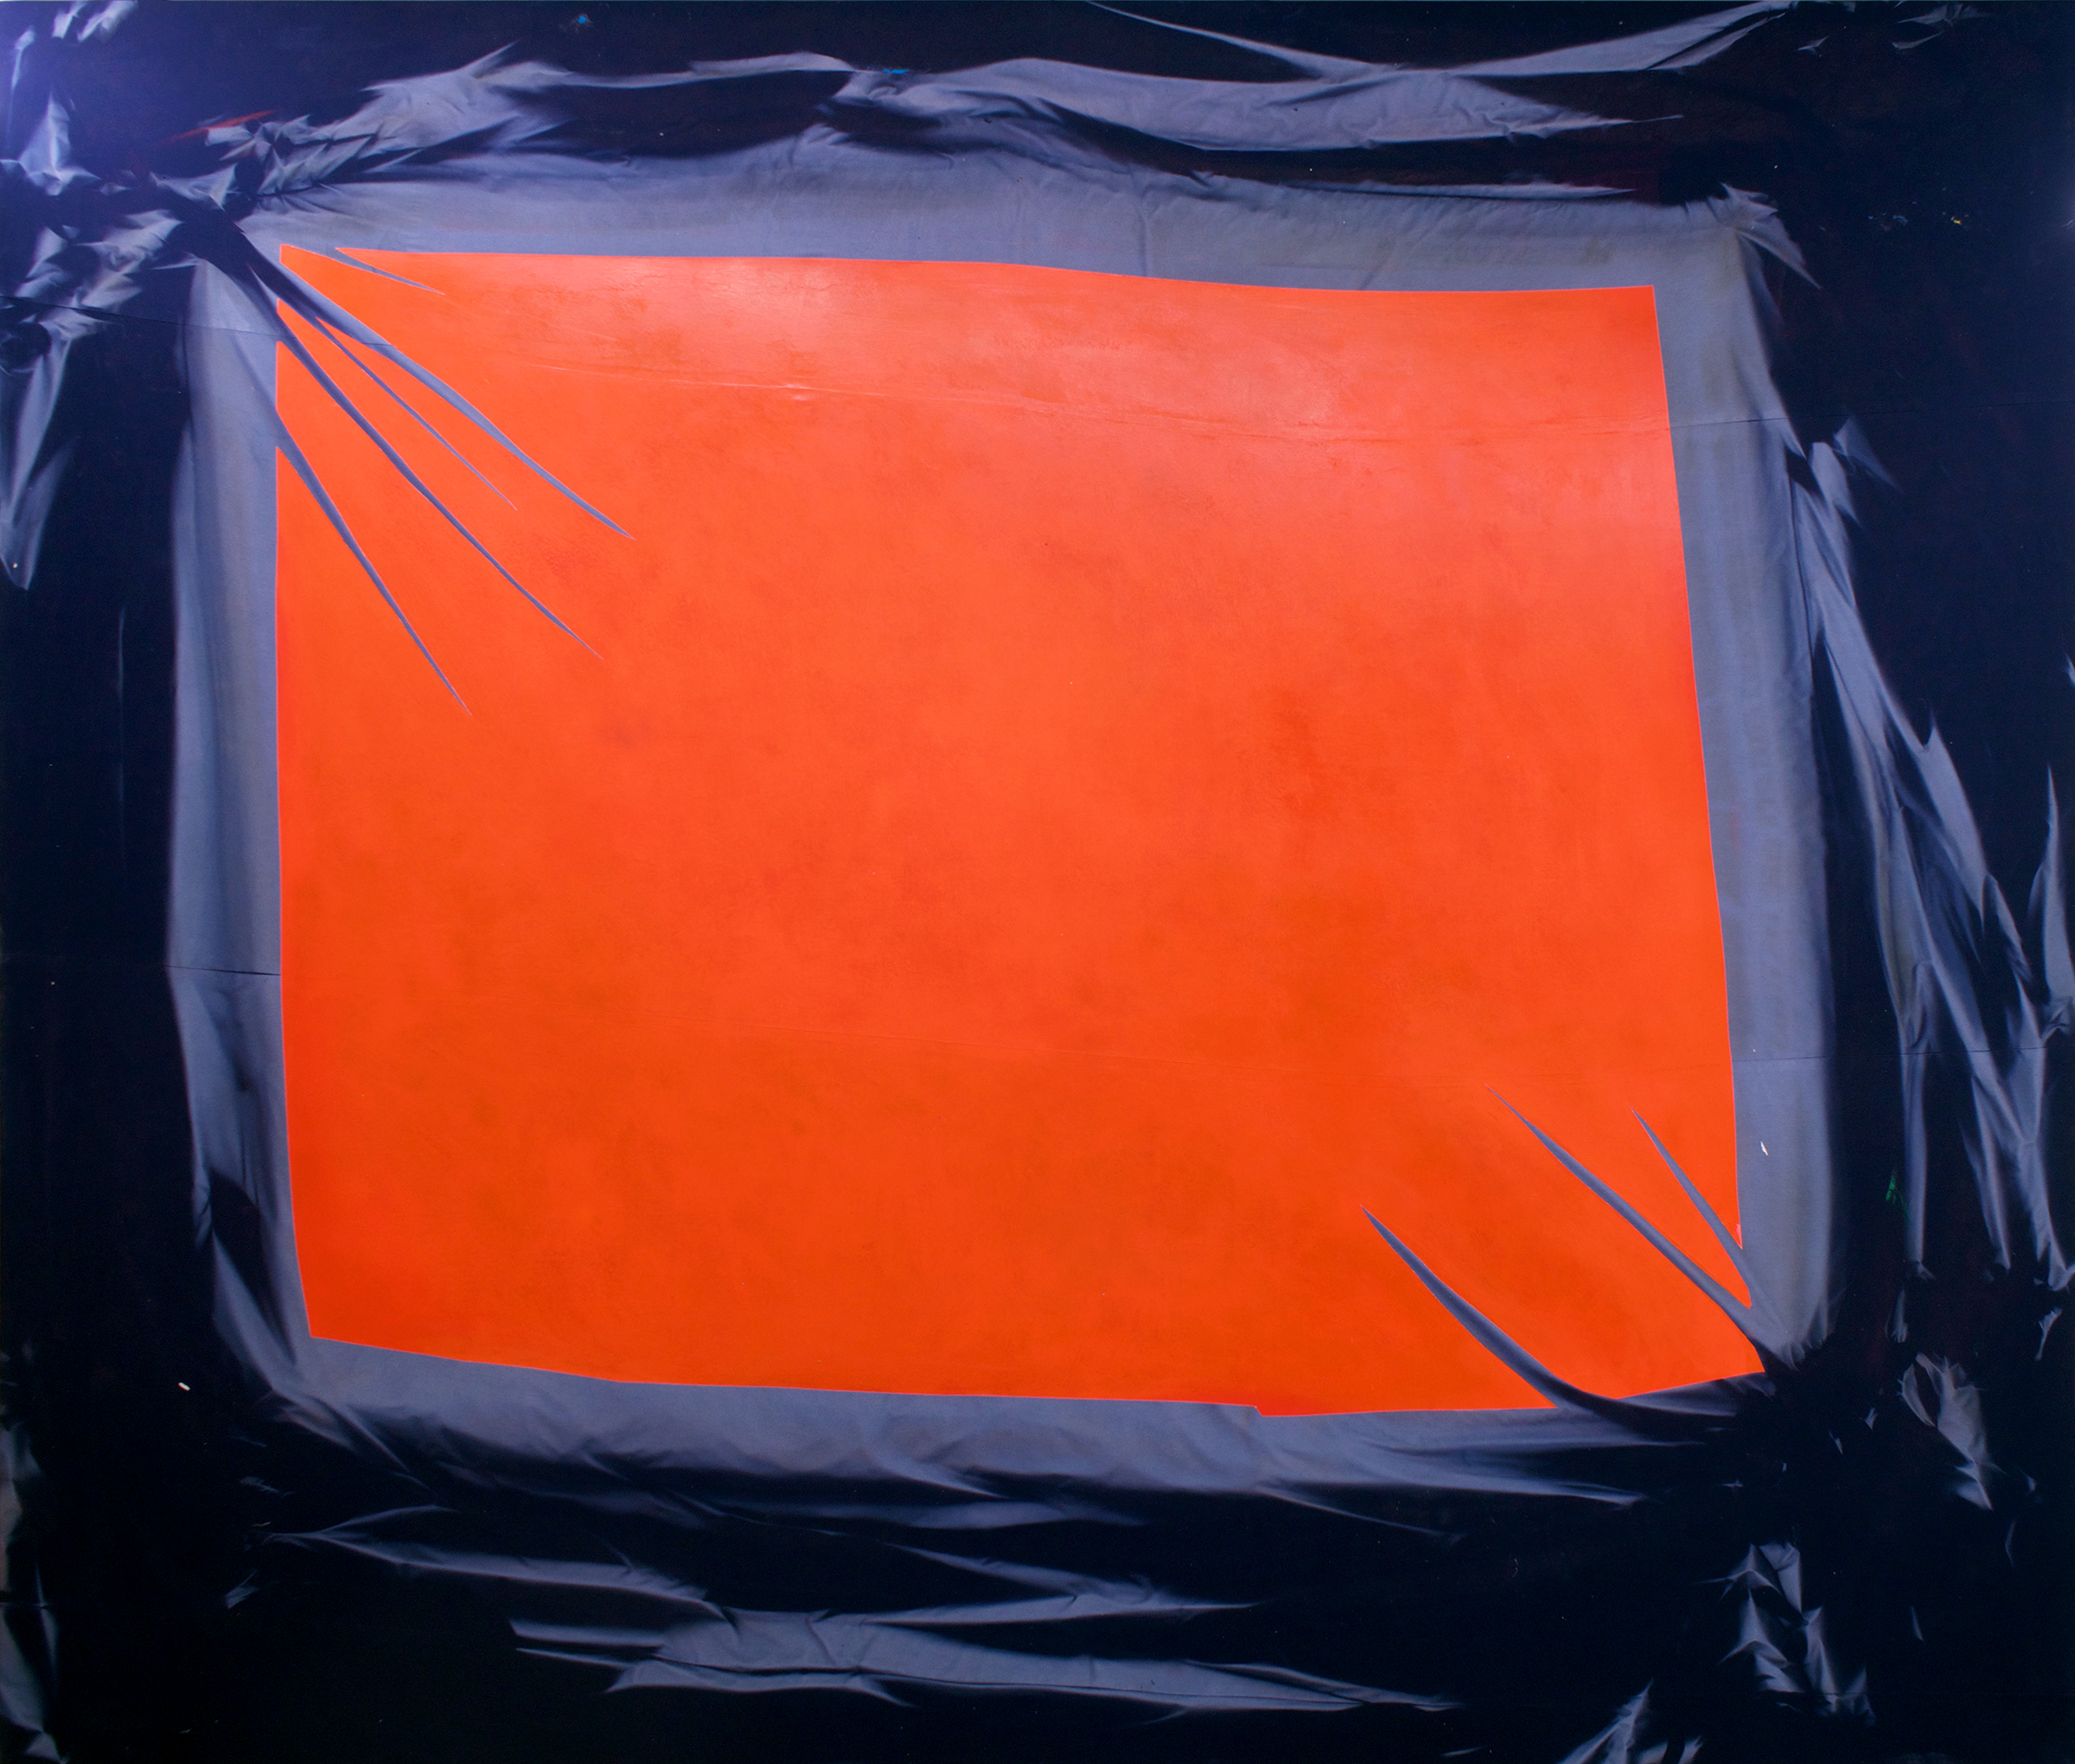 """CHRIS DUNCAN   Skylight – Red & Blue (Summer Solstice-Winter Solstice 2016) 6 Month Exposure/Los Angeles , 2017, sun, time and acrylic on fabric, 120"""" x 137"""""""